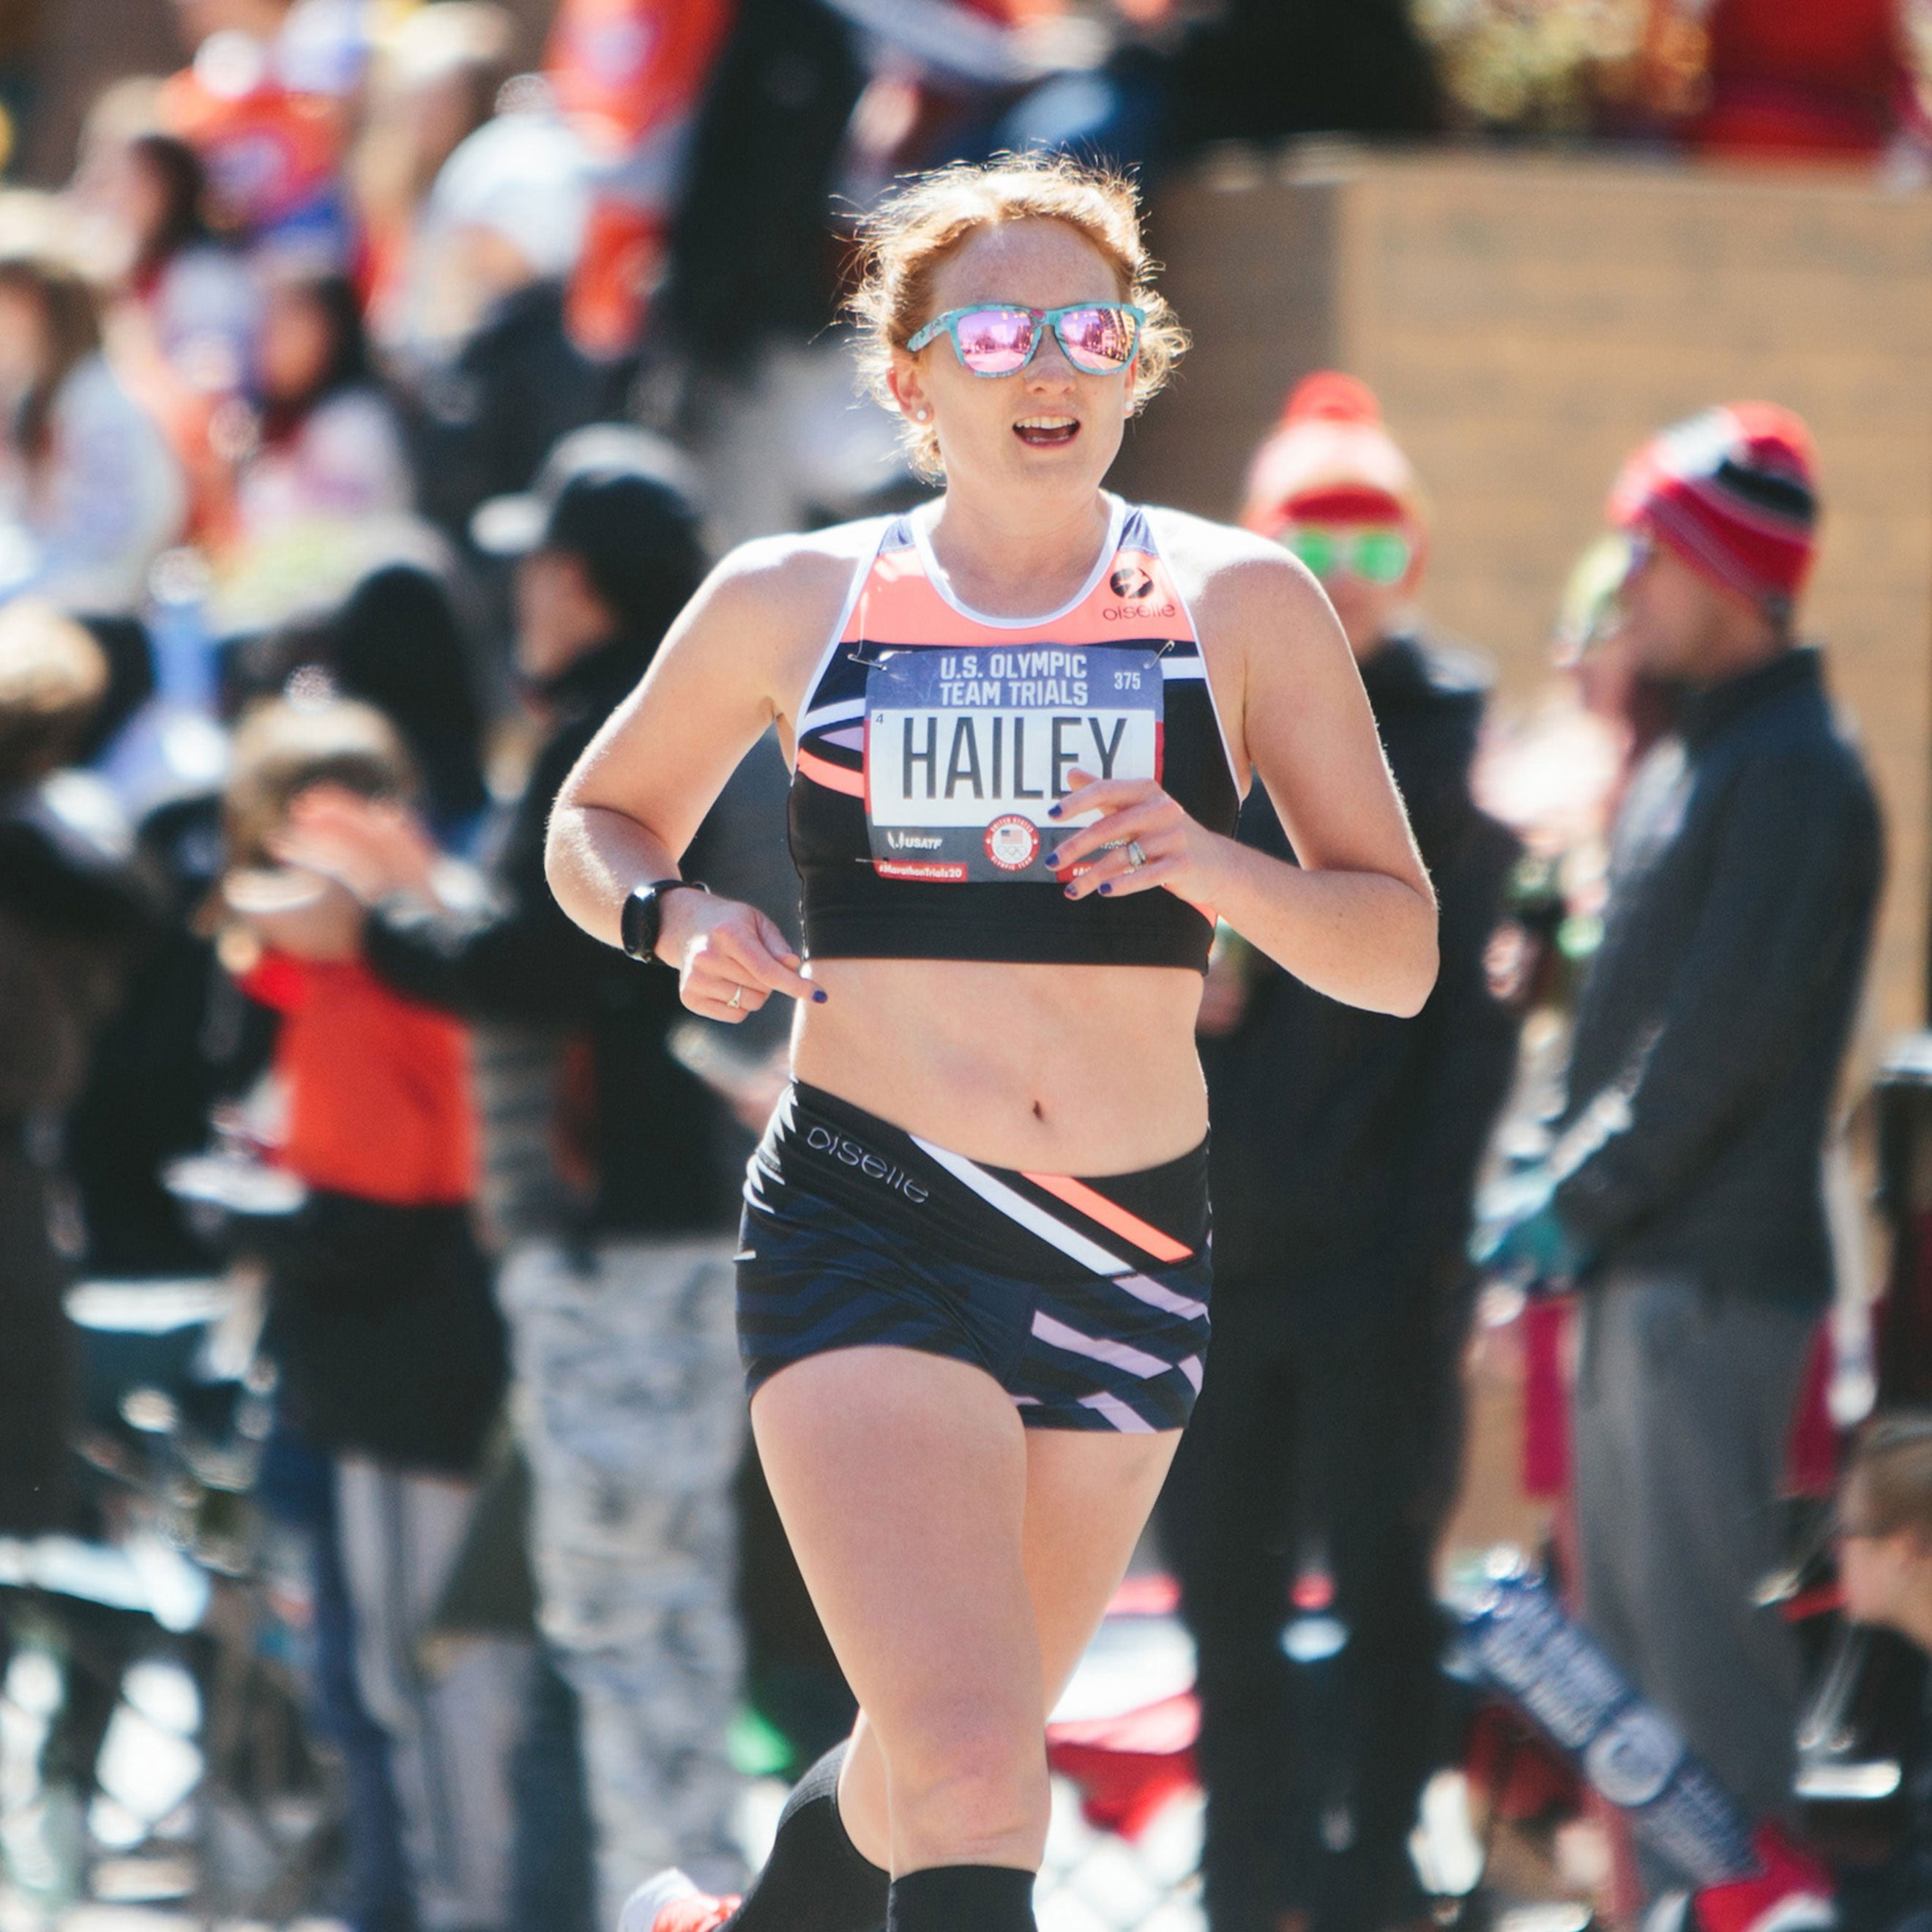 THERESA HAILEY: RACING WITH JOY